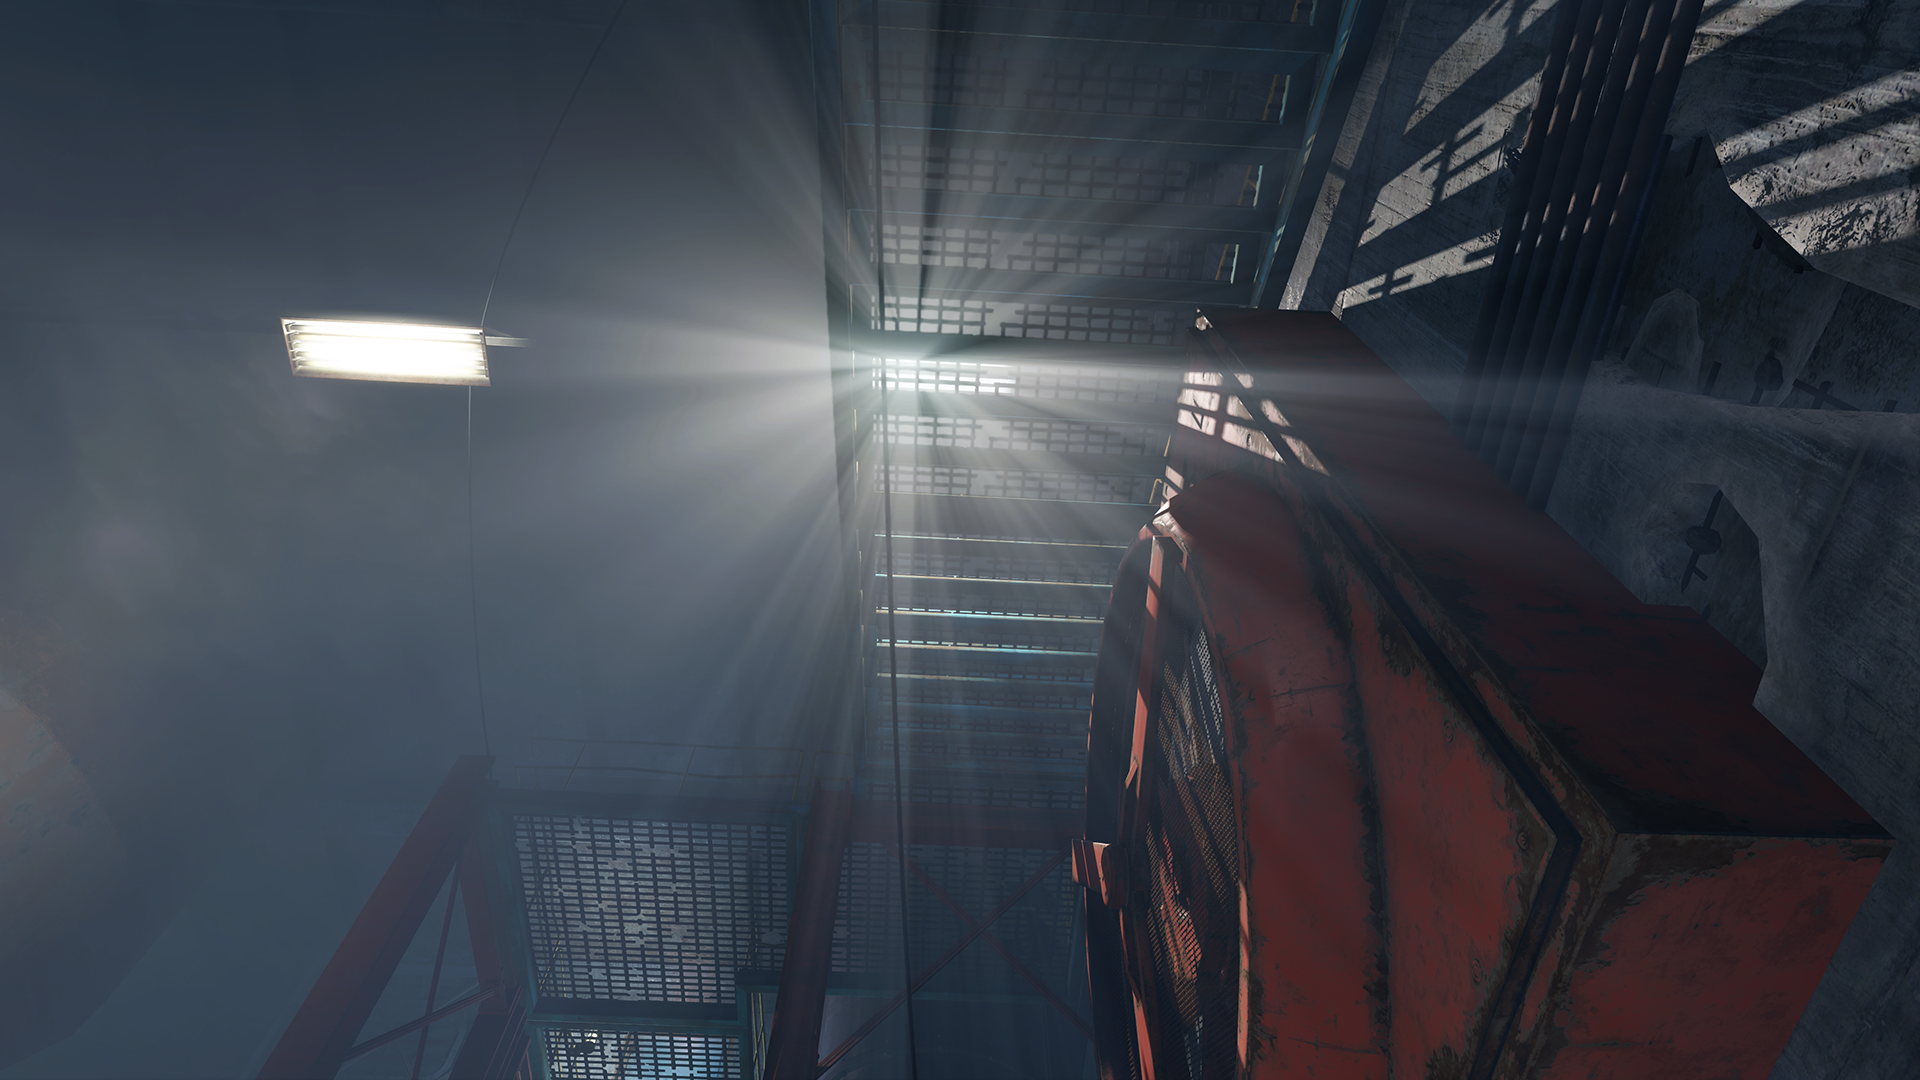 How To Use Wall Lights Fallout 4 : GeForce.com Fallout 4 God Rays Quality (NVIDIA Volumetric Lighting) Interactive Comparison ...